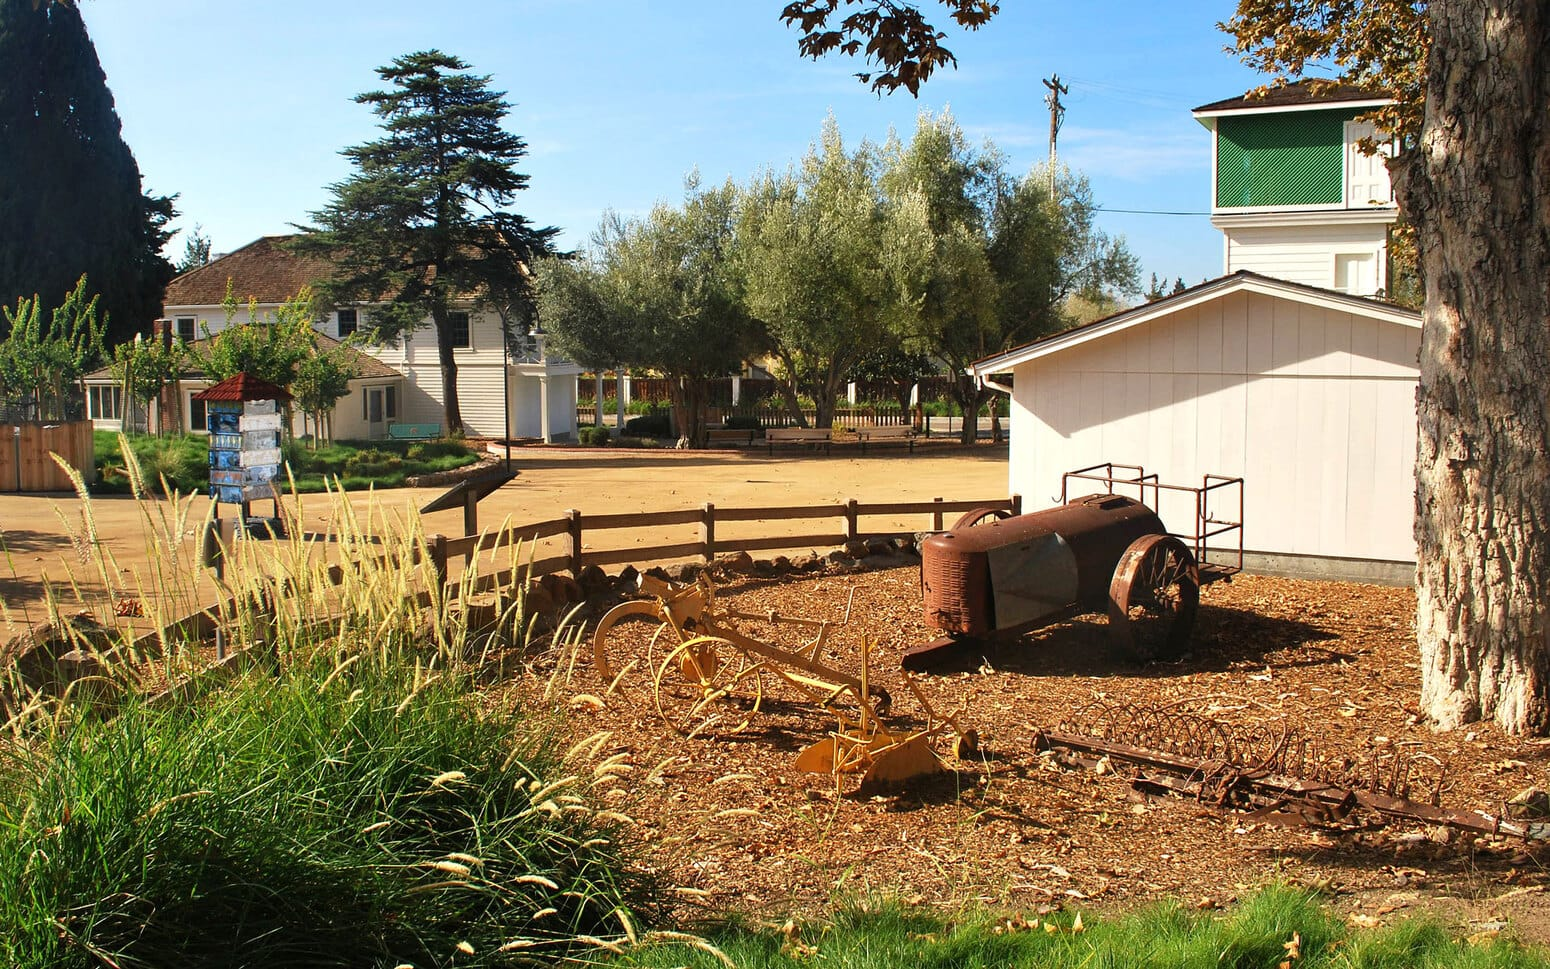 Alviso Adobe Historic Neighborhood Park